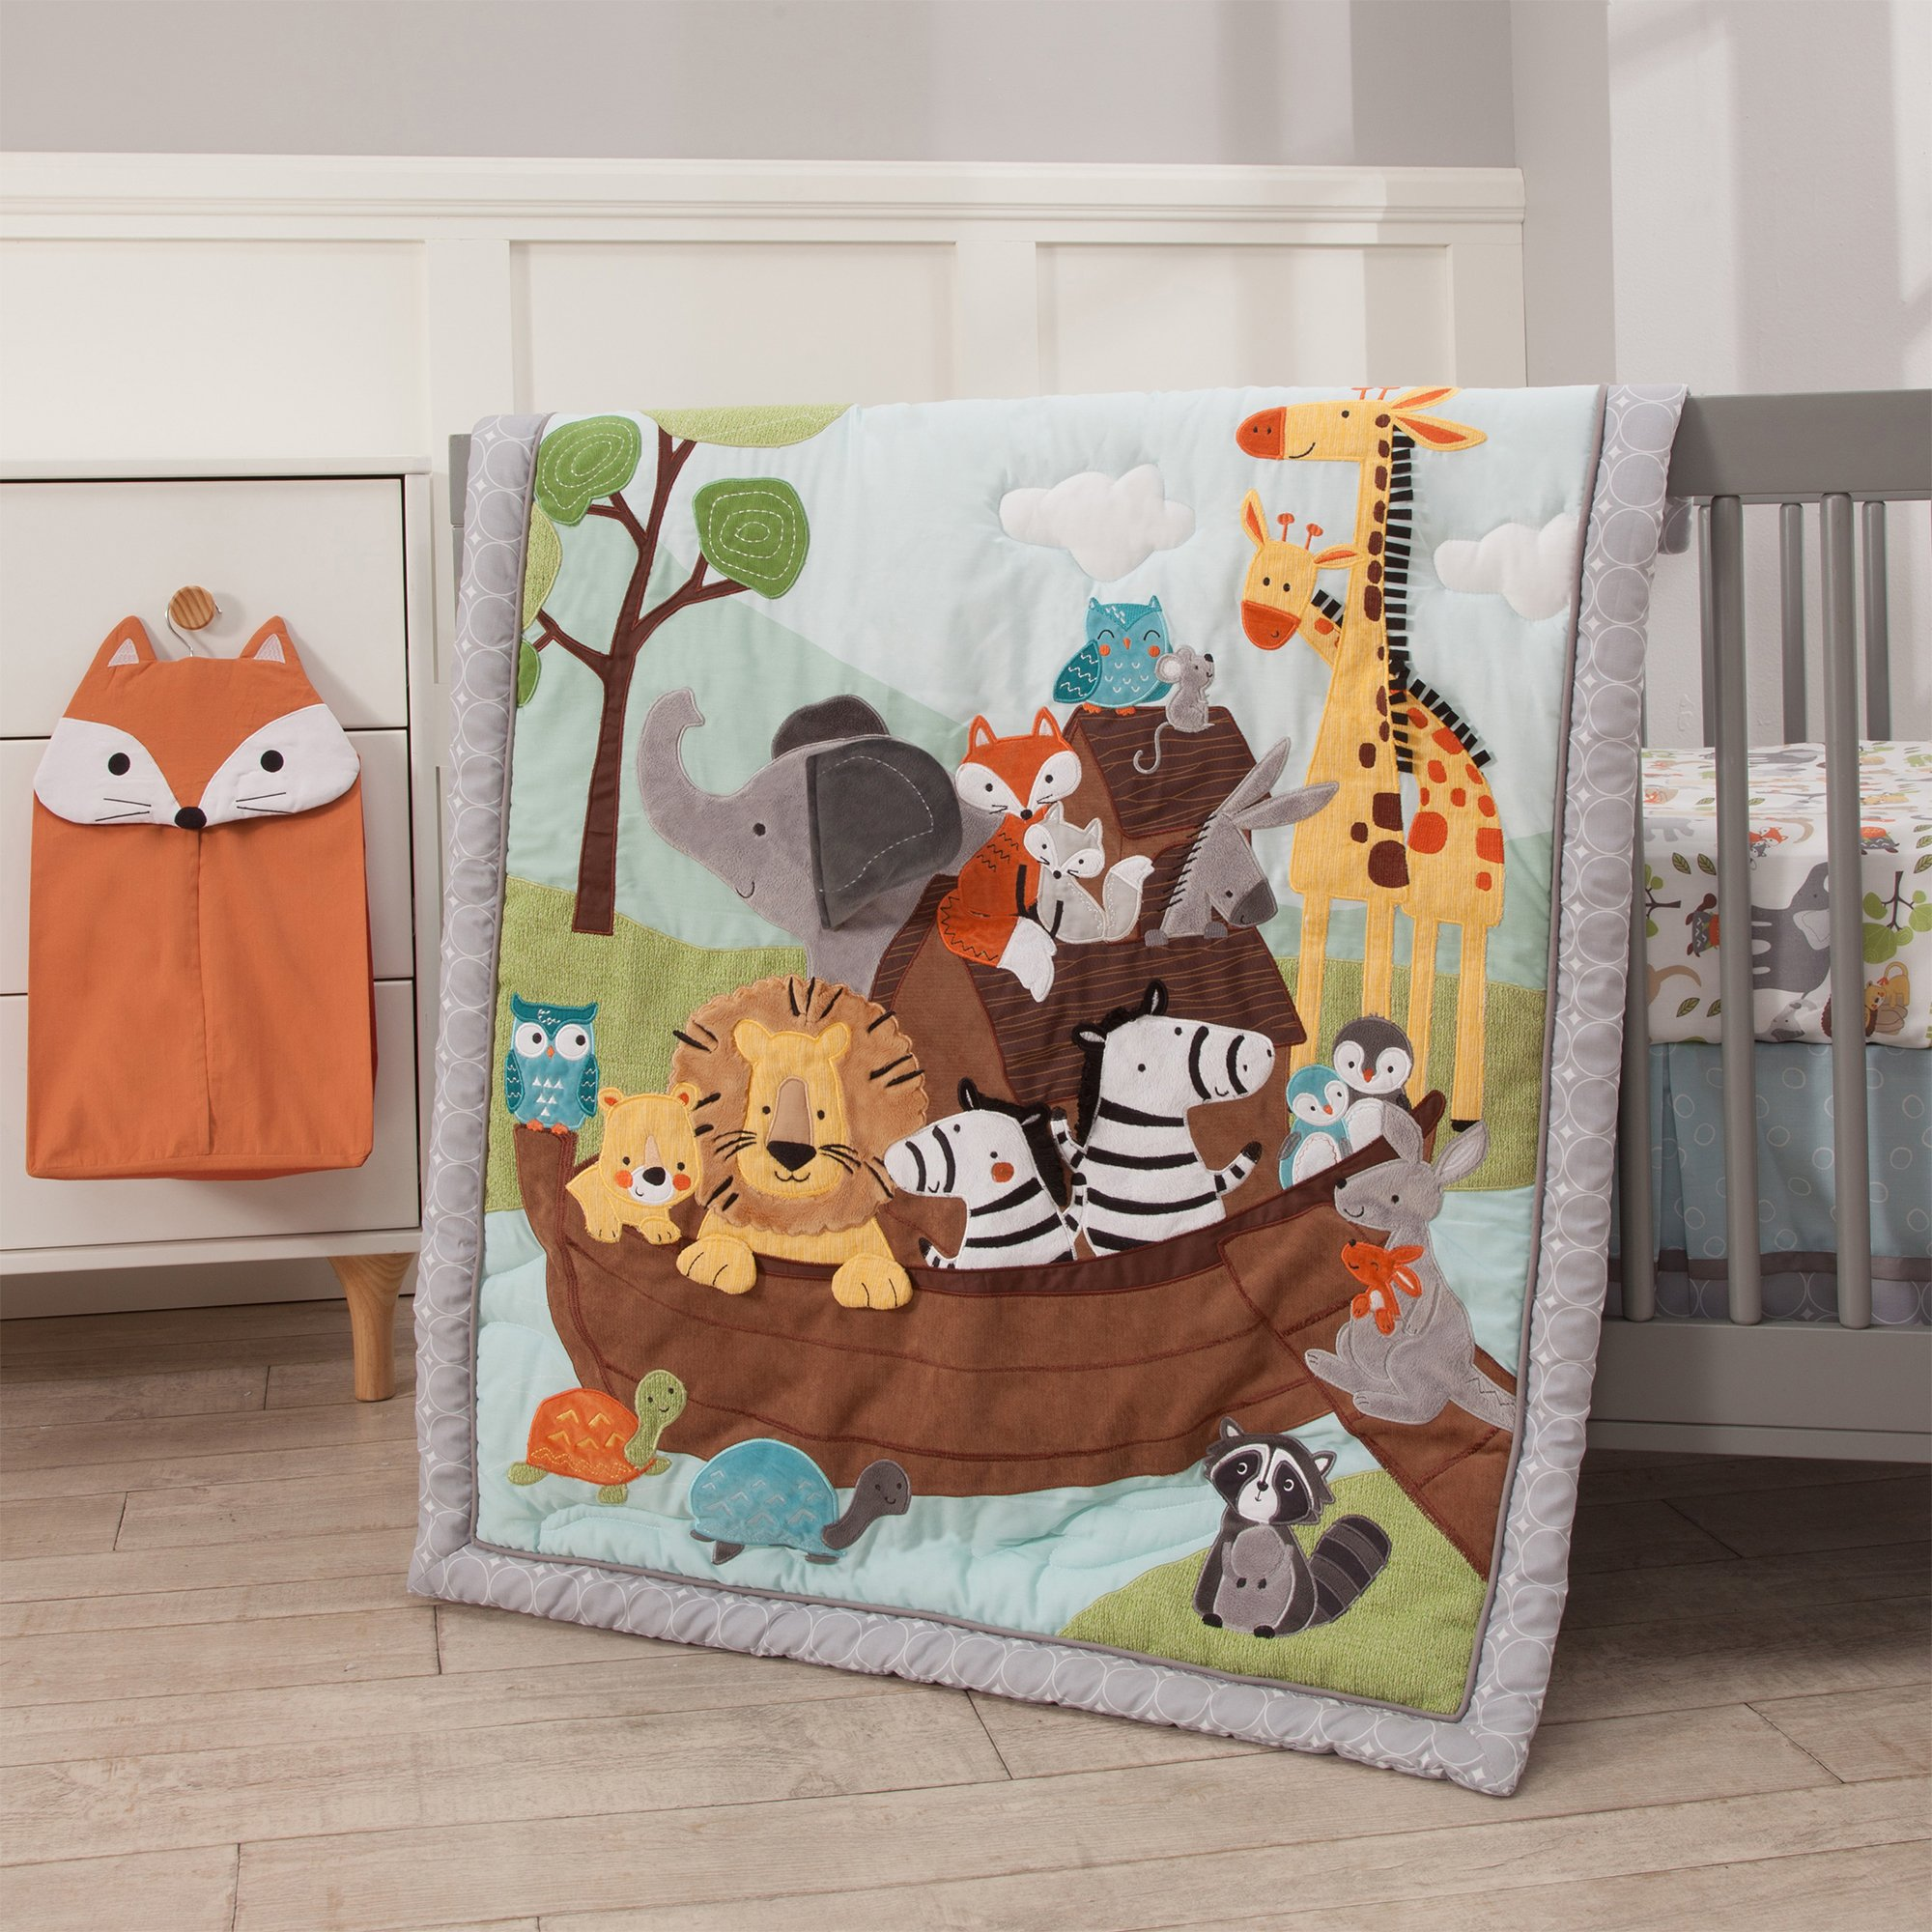 Lambs & Ivy Two of A Kind Noah'S Ark Animals 4 Piece Crib Bedding Set, Blue/Gray by Lambs & Ivy (Image #8)